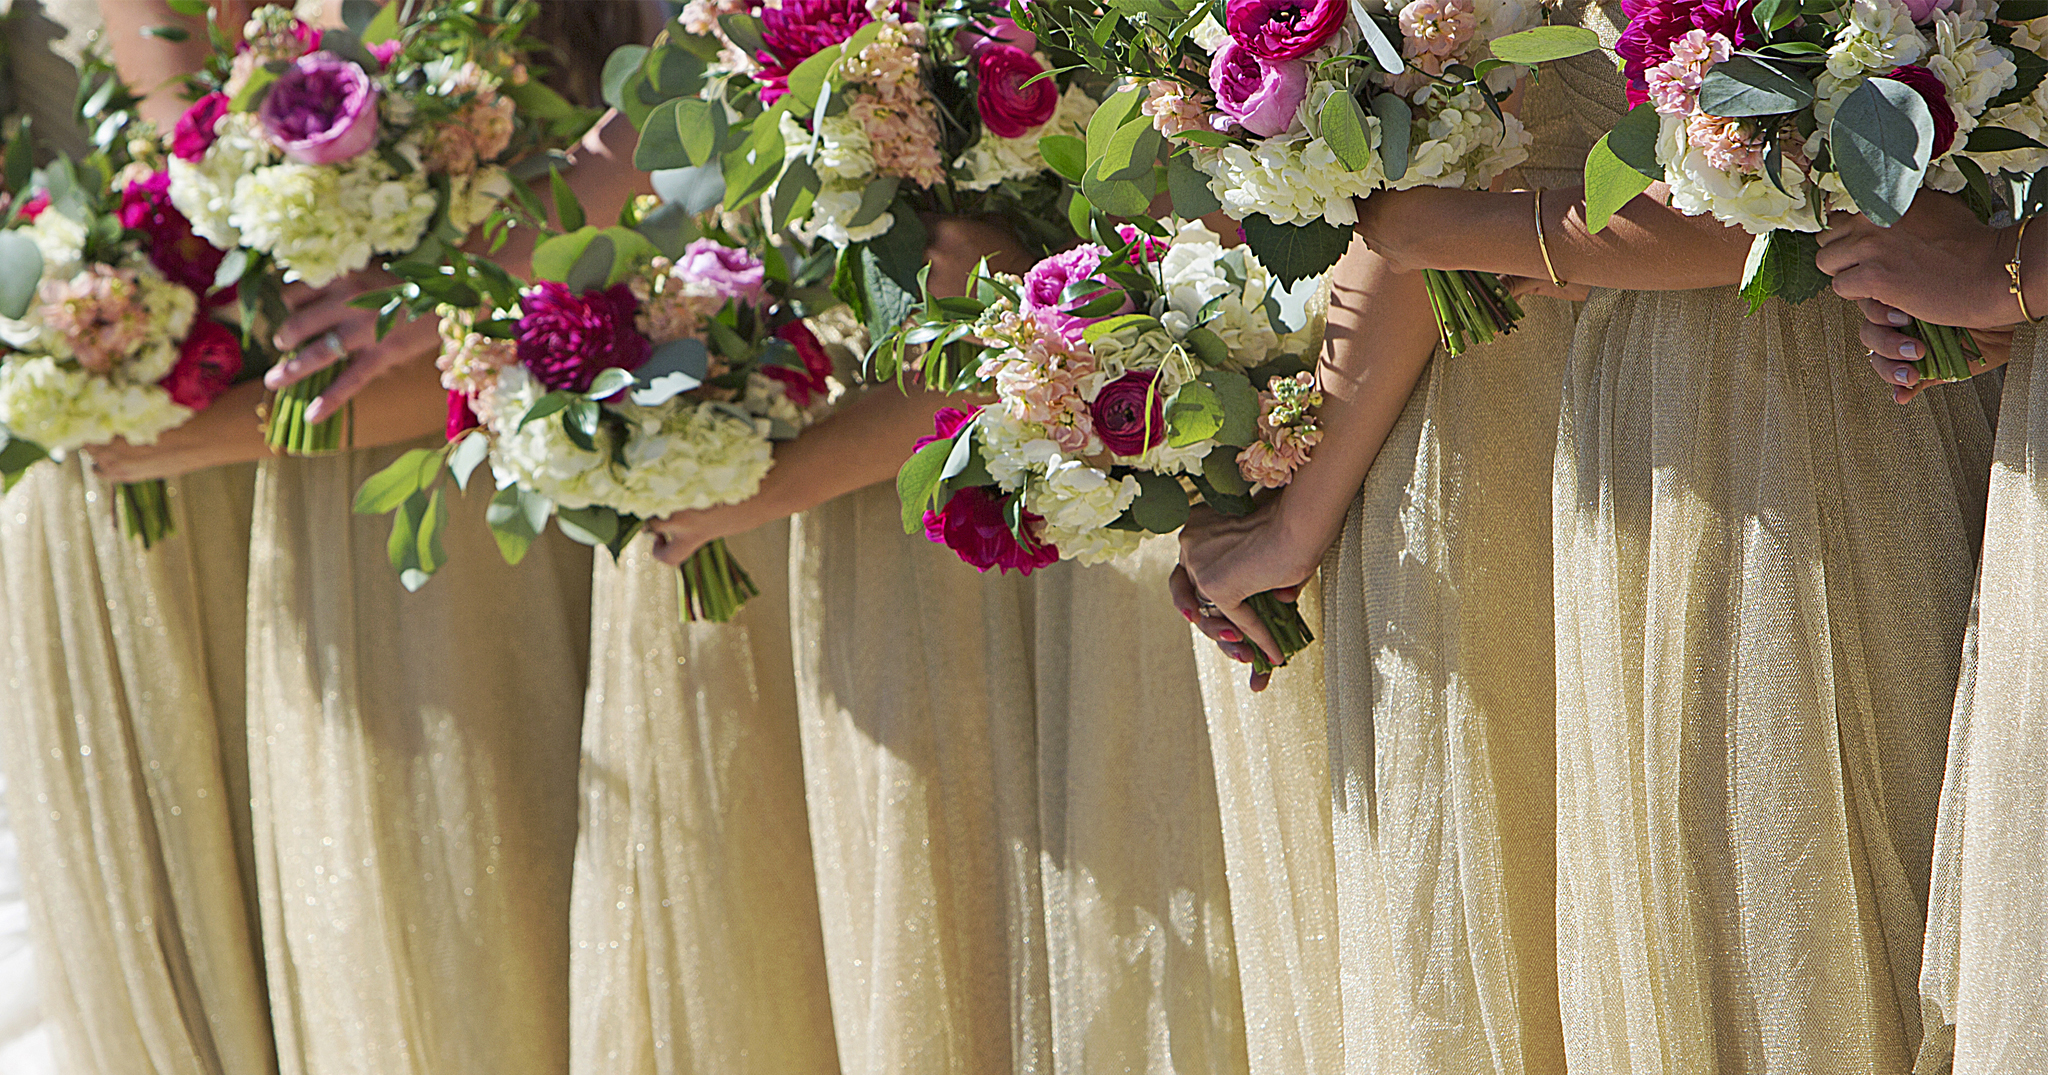 The 6 Unexpected Places to Shop for Bridesmaids Dresses Online - BridalPulse